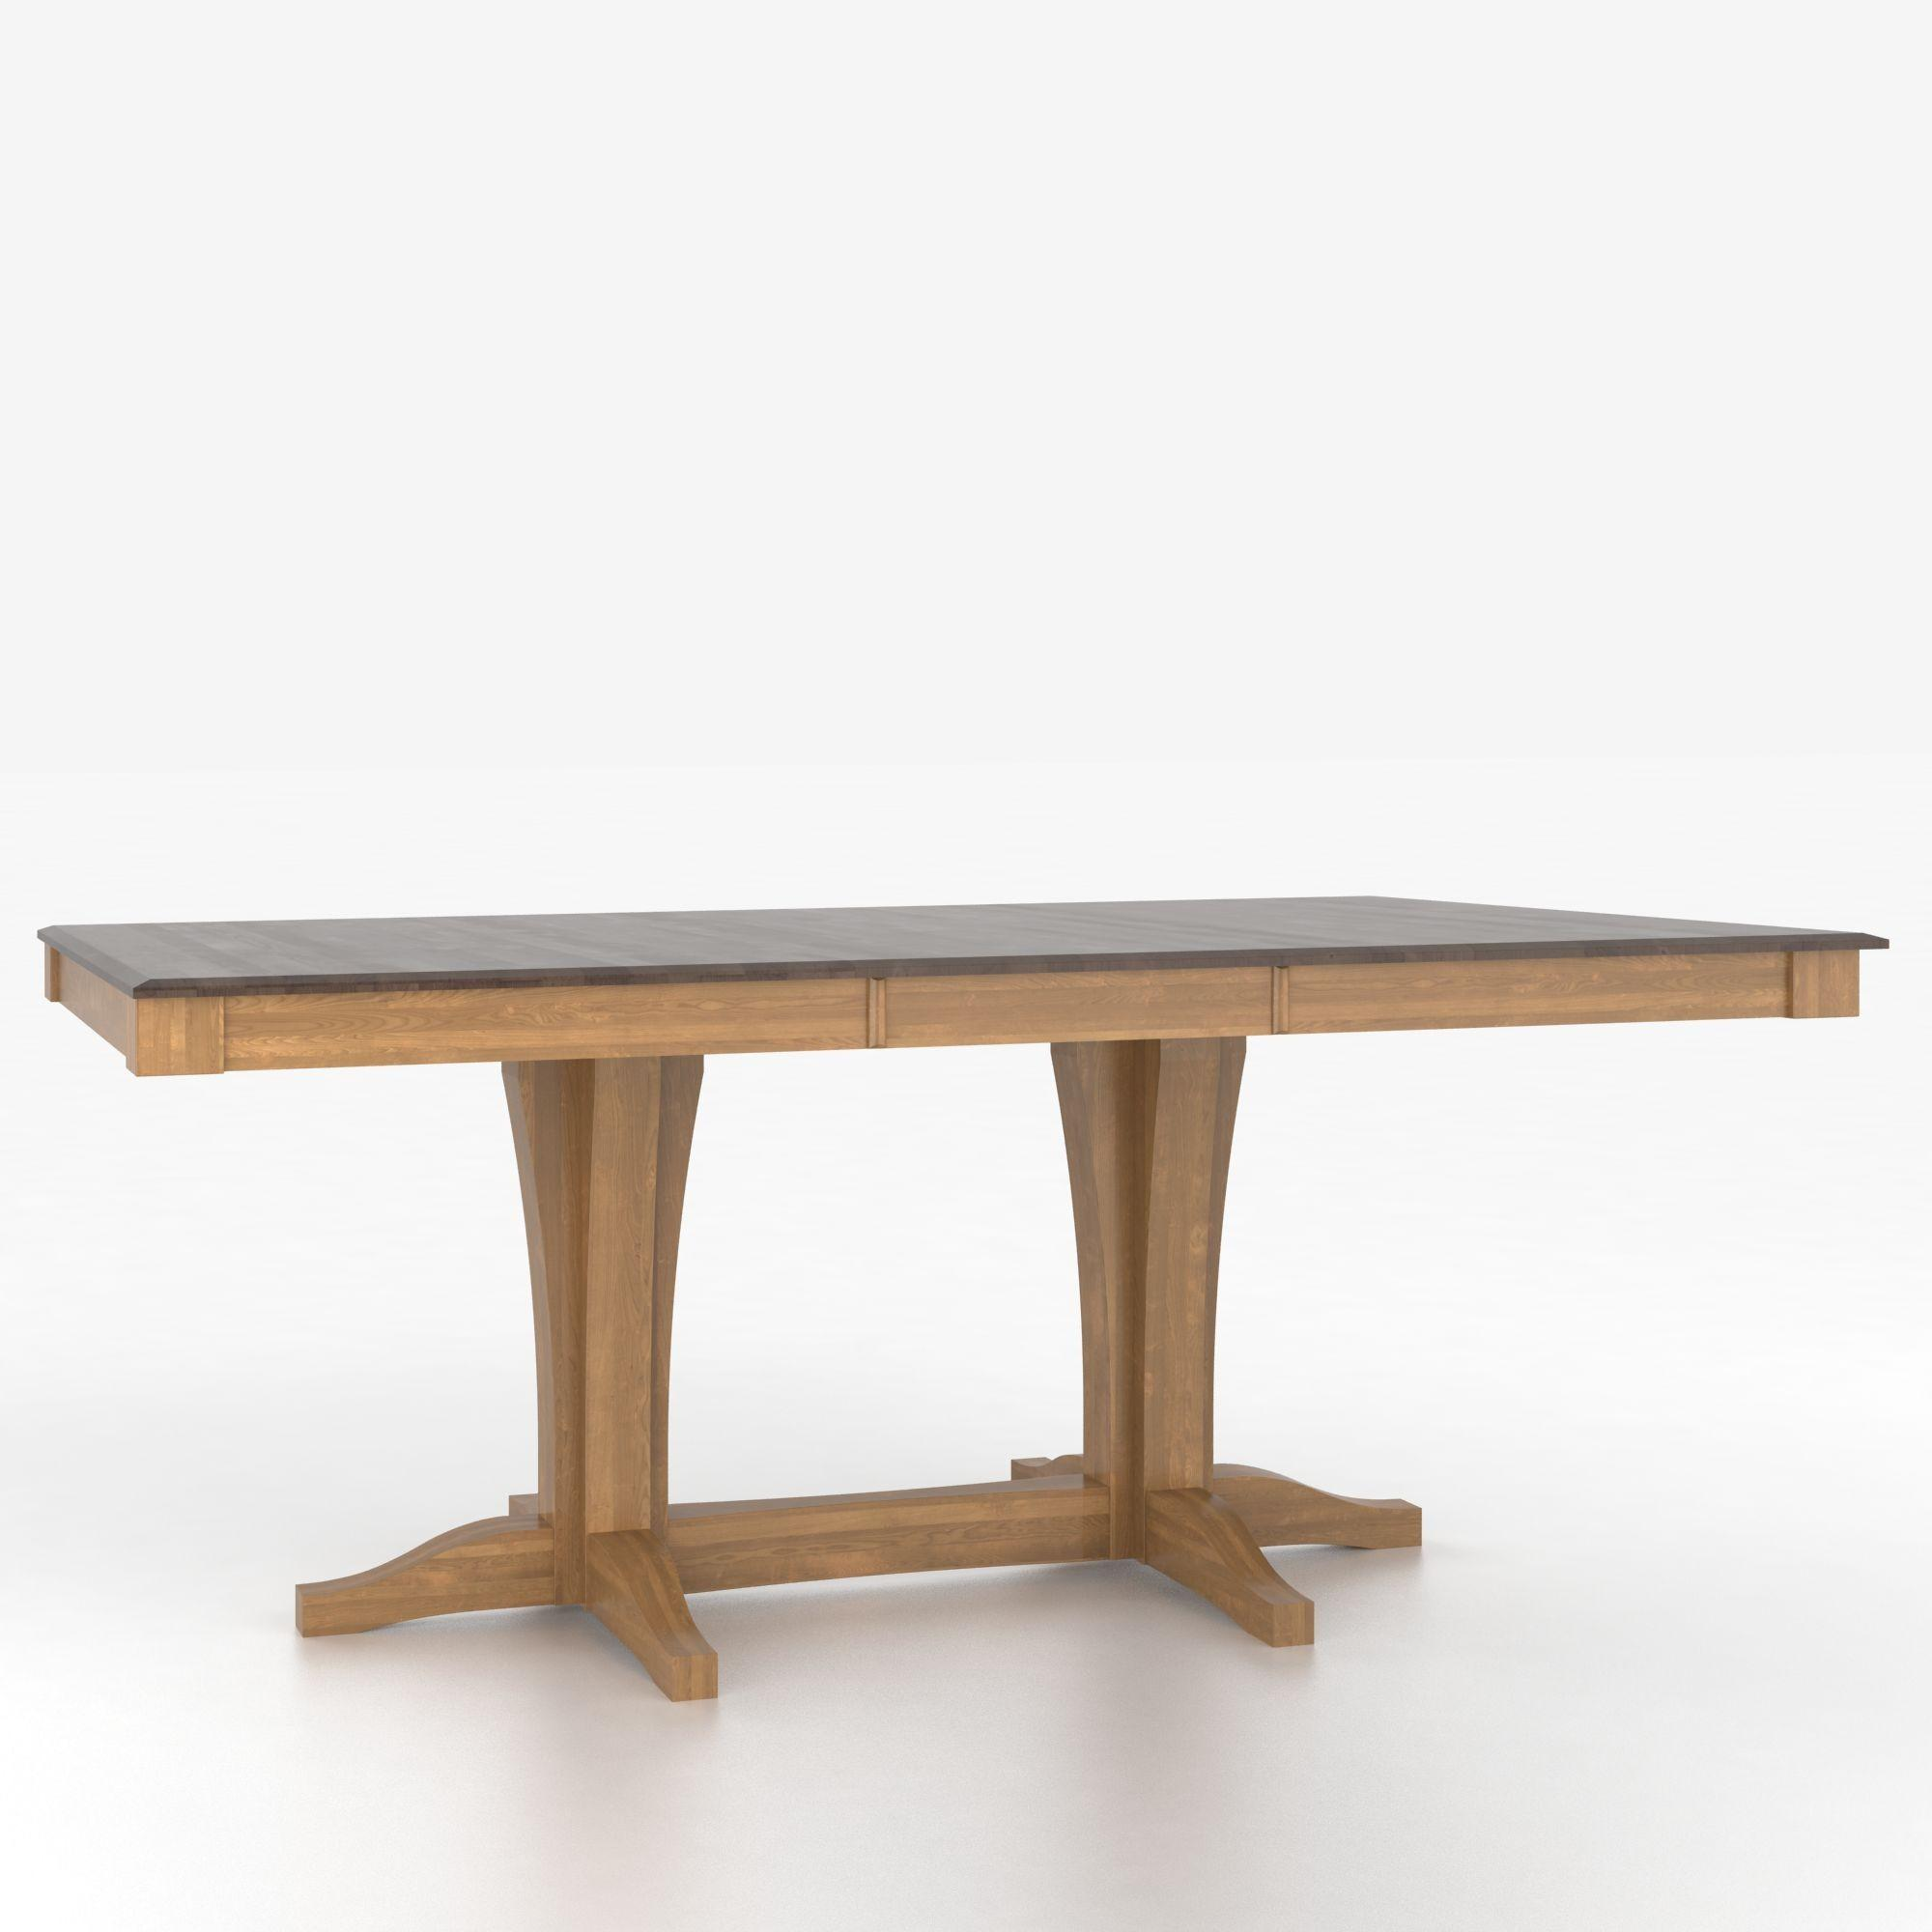 Custom Dining Tables Customizable Rectangular Table with Pedestal by Canadel at Jordan's Home Furnishings